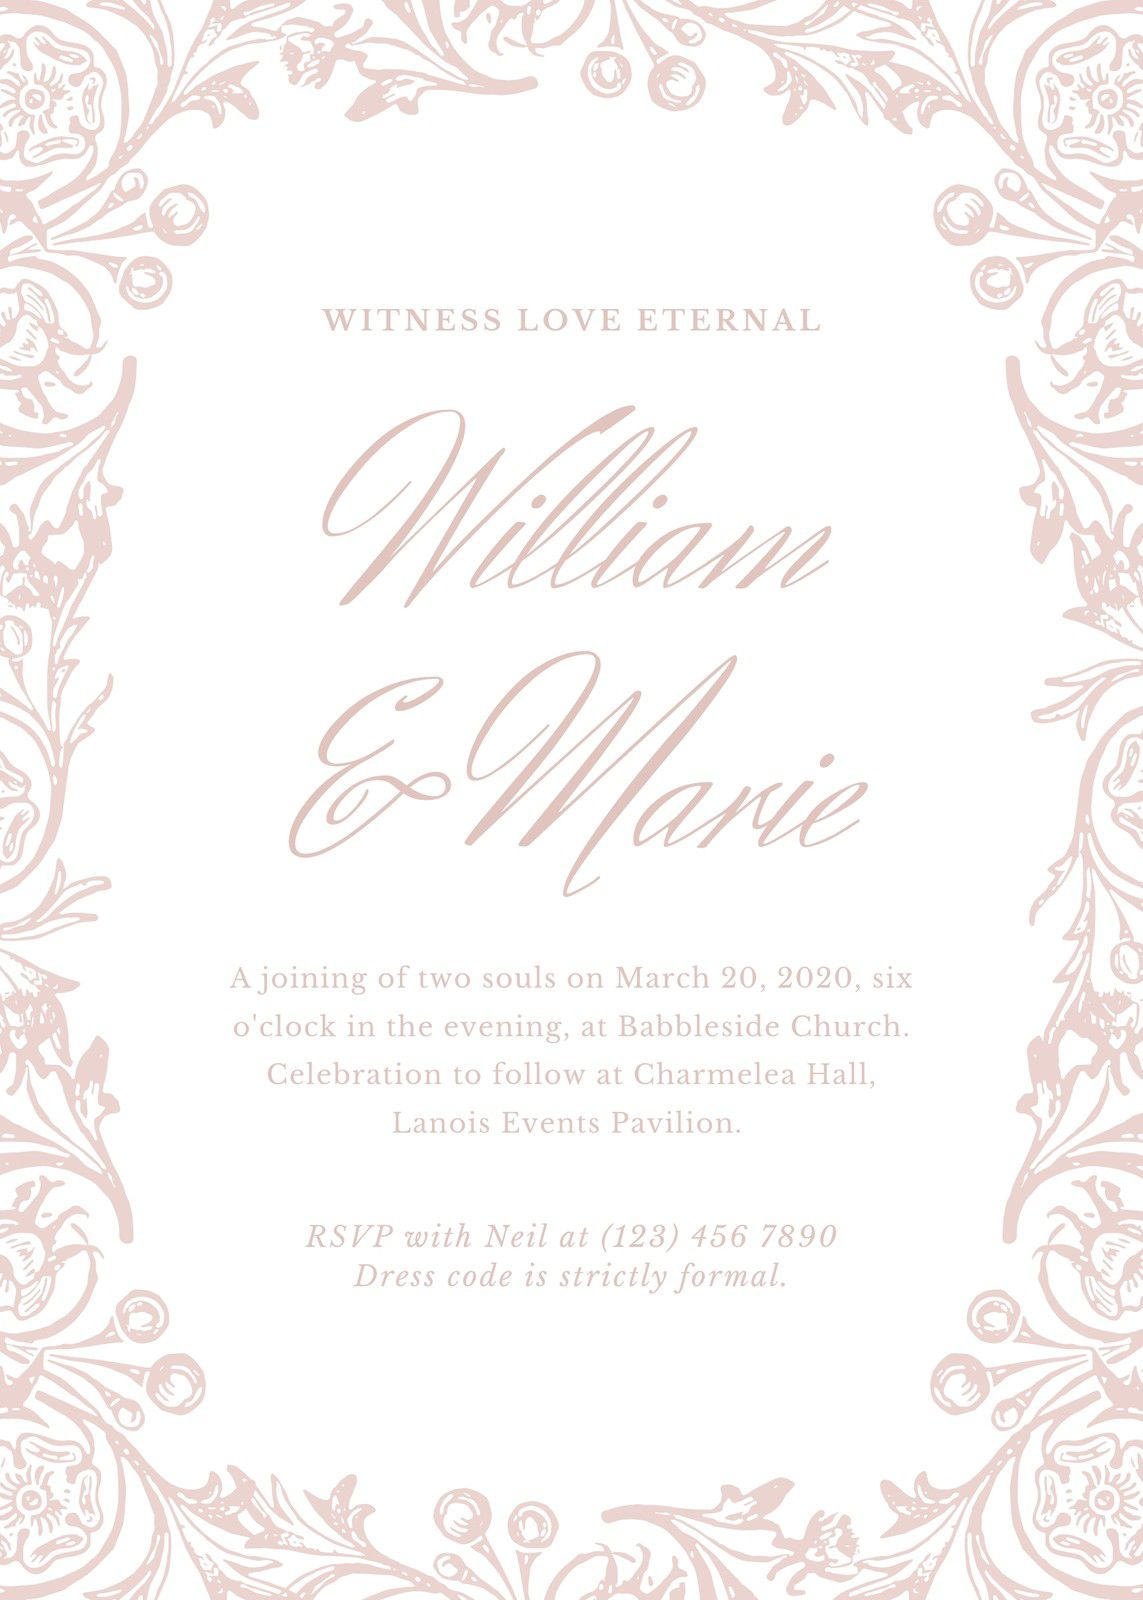 008 Beautiful Formal Wedding Invitation Template High Def  Templates Email Format Wording FreeFull